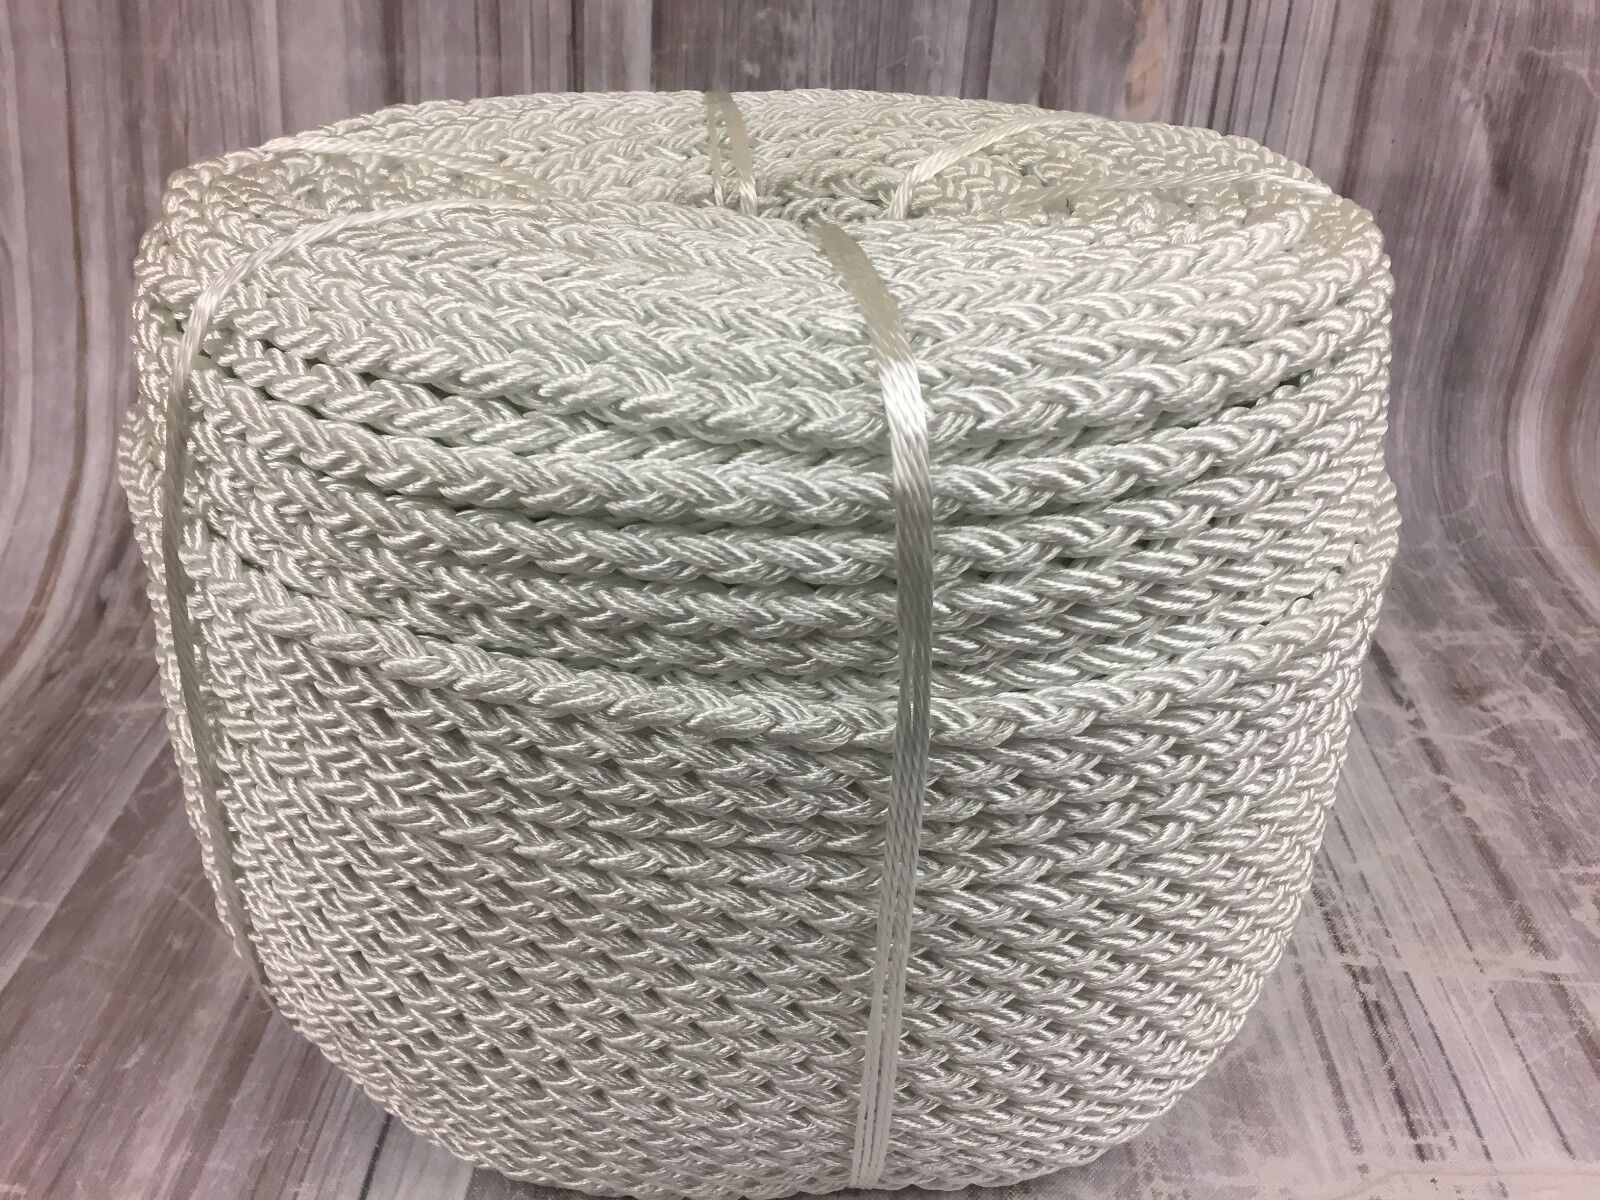 10mm 8 Strand White Nylon Rope x 50mts, Anchor Mooring Rope Multiplait Octoplait